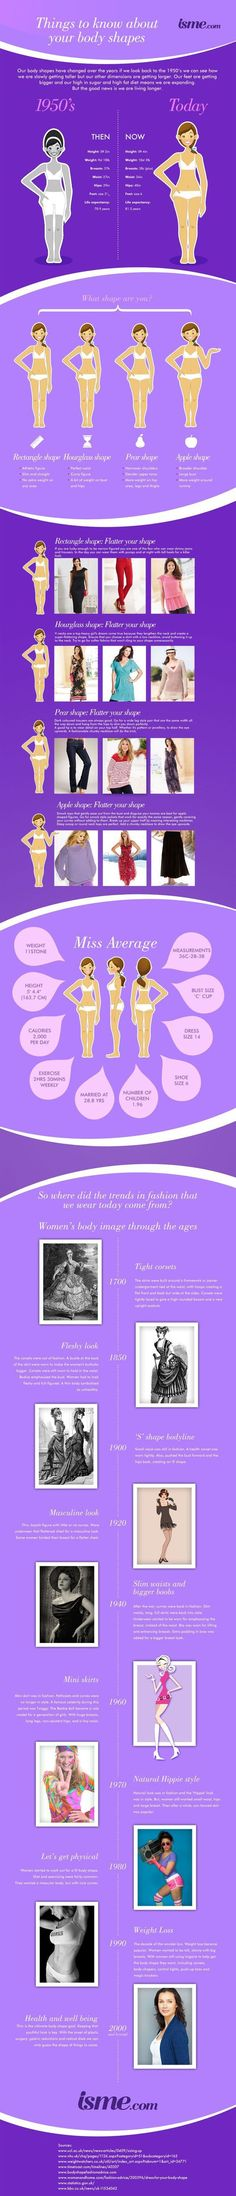 Body shape infographic, average womans shape and size